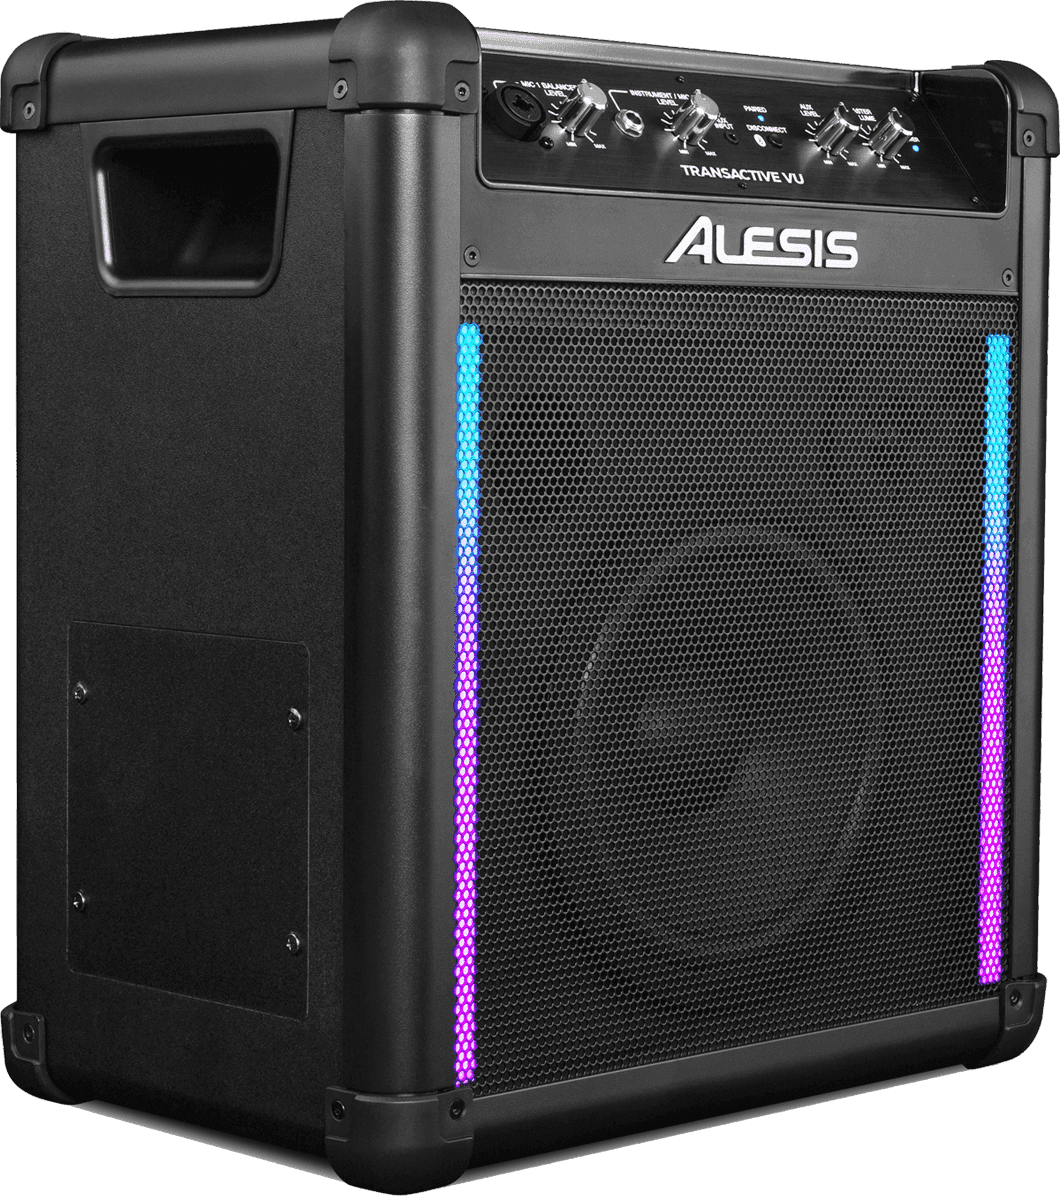 alesis tawireless2 la boite noire du musicien. Black Bedroom Furniture Sets. Home Design Ideas